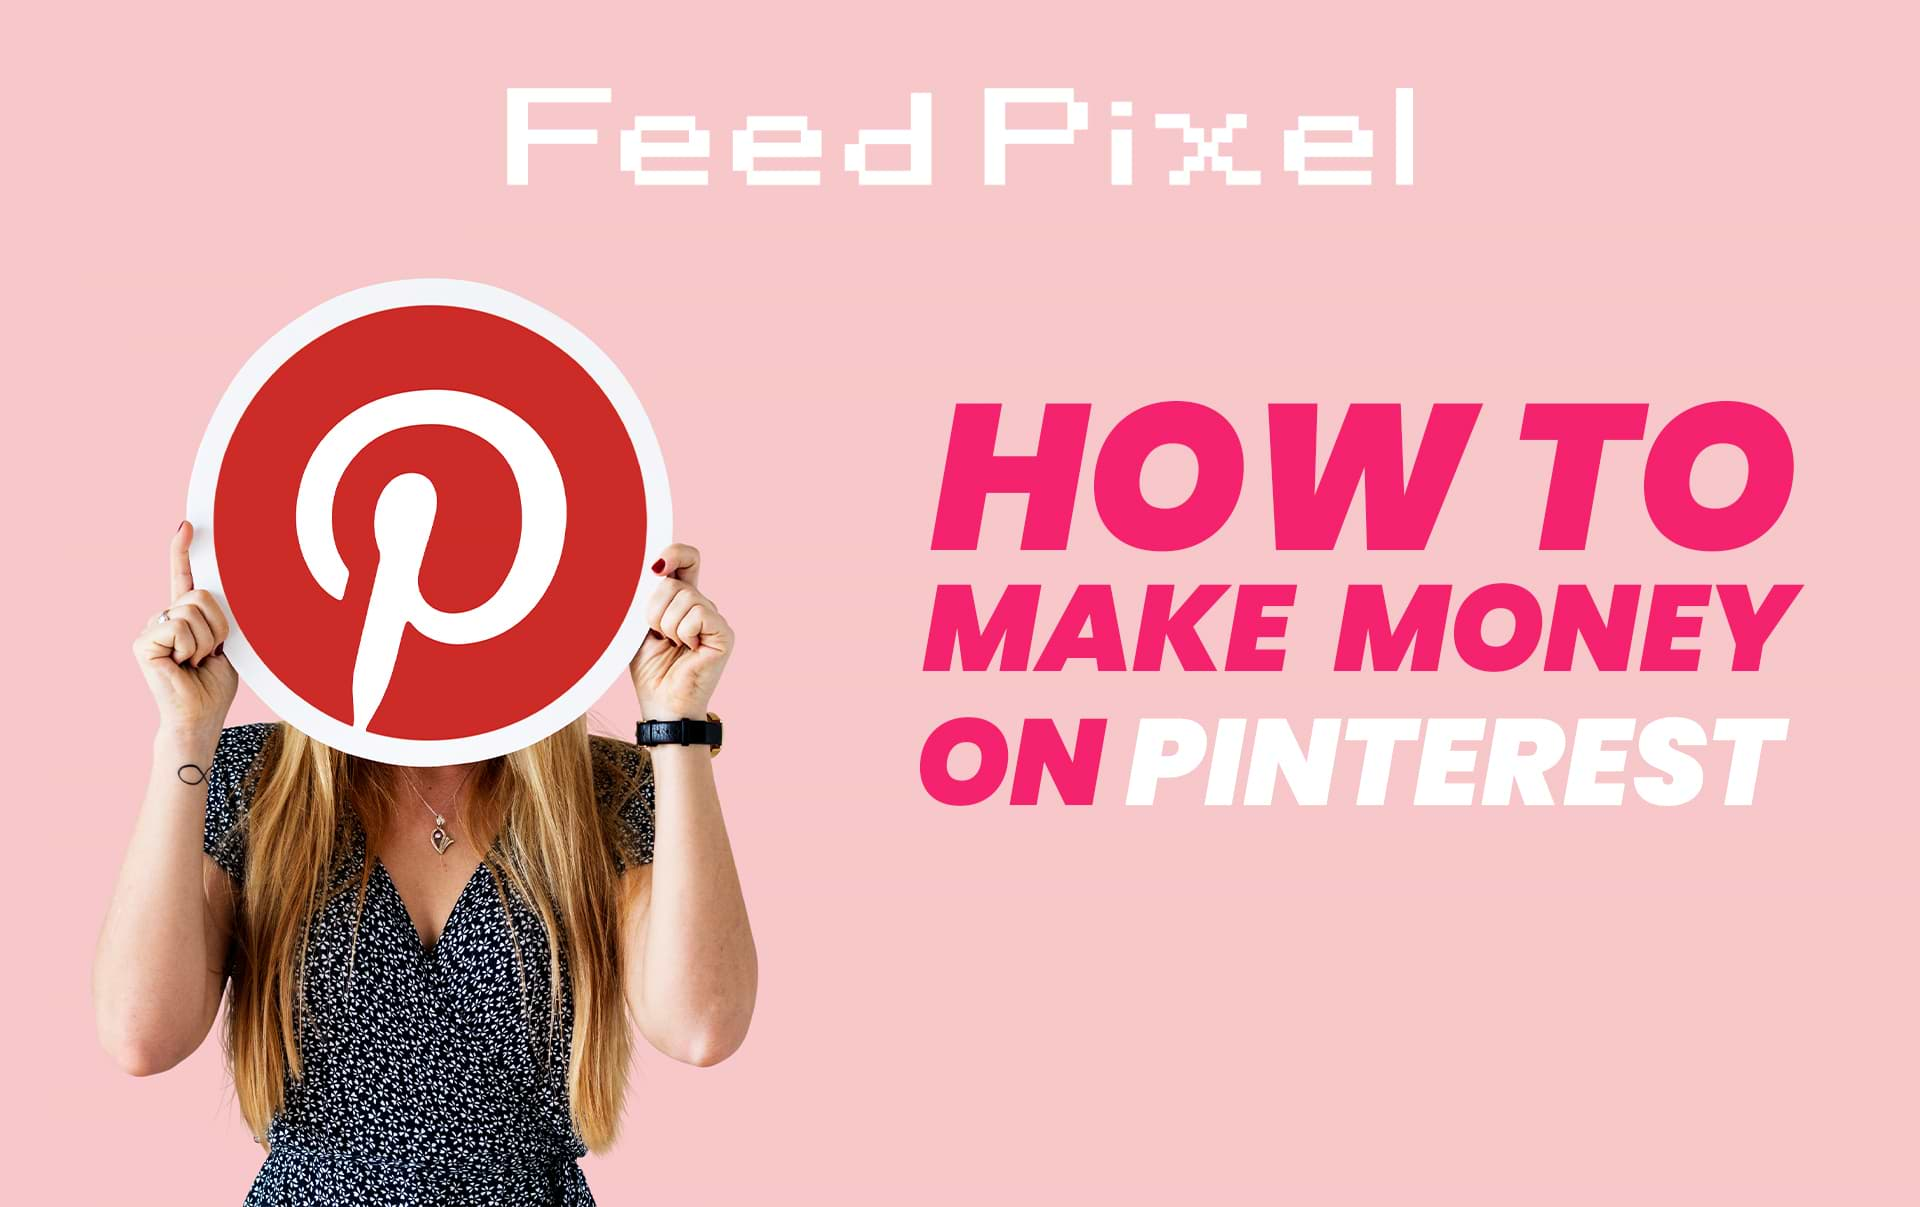 How To Make Money On Pinterest: A Step-By-Step Guide